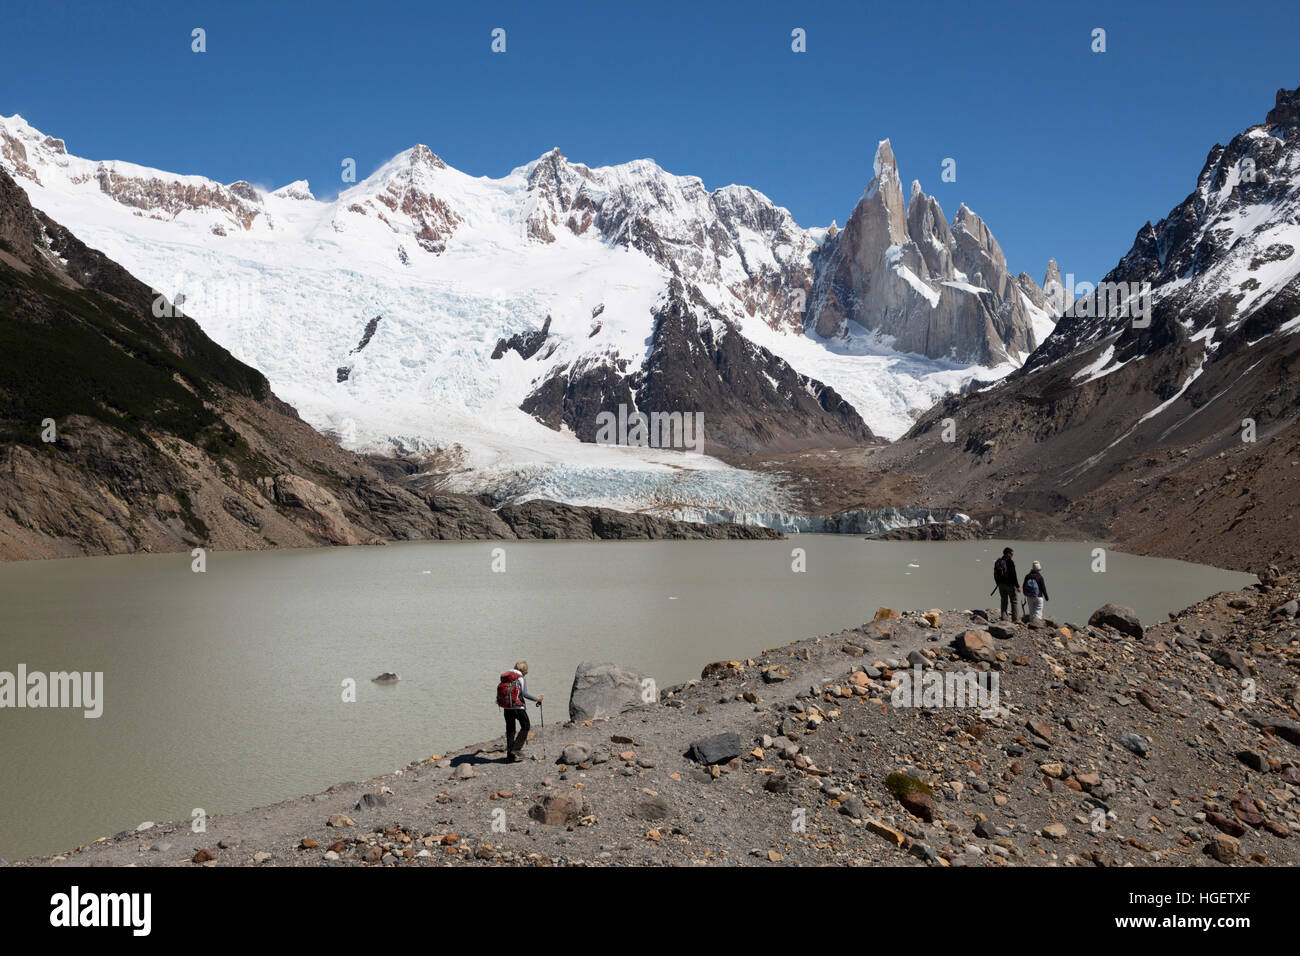 Hikers walking by Laguna Torre with view of Cerro Torre, El Chalten, Patagonia, Argentina, South America - Stock Image